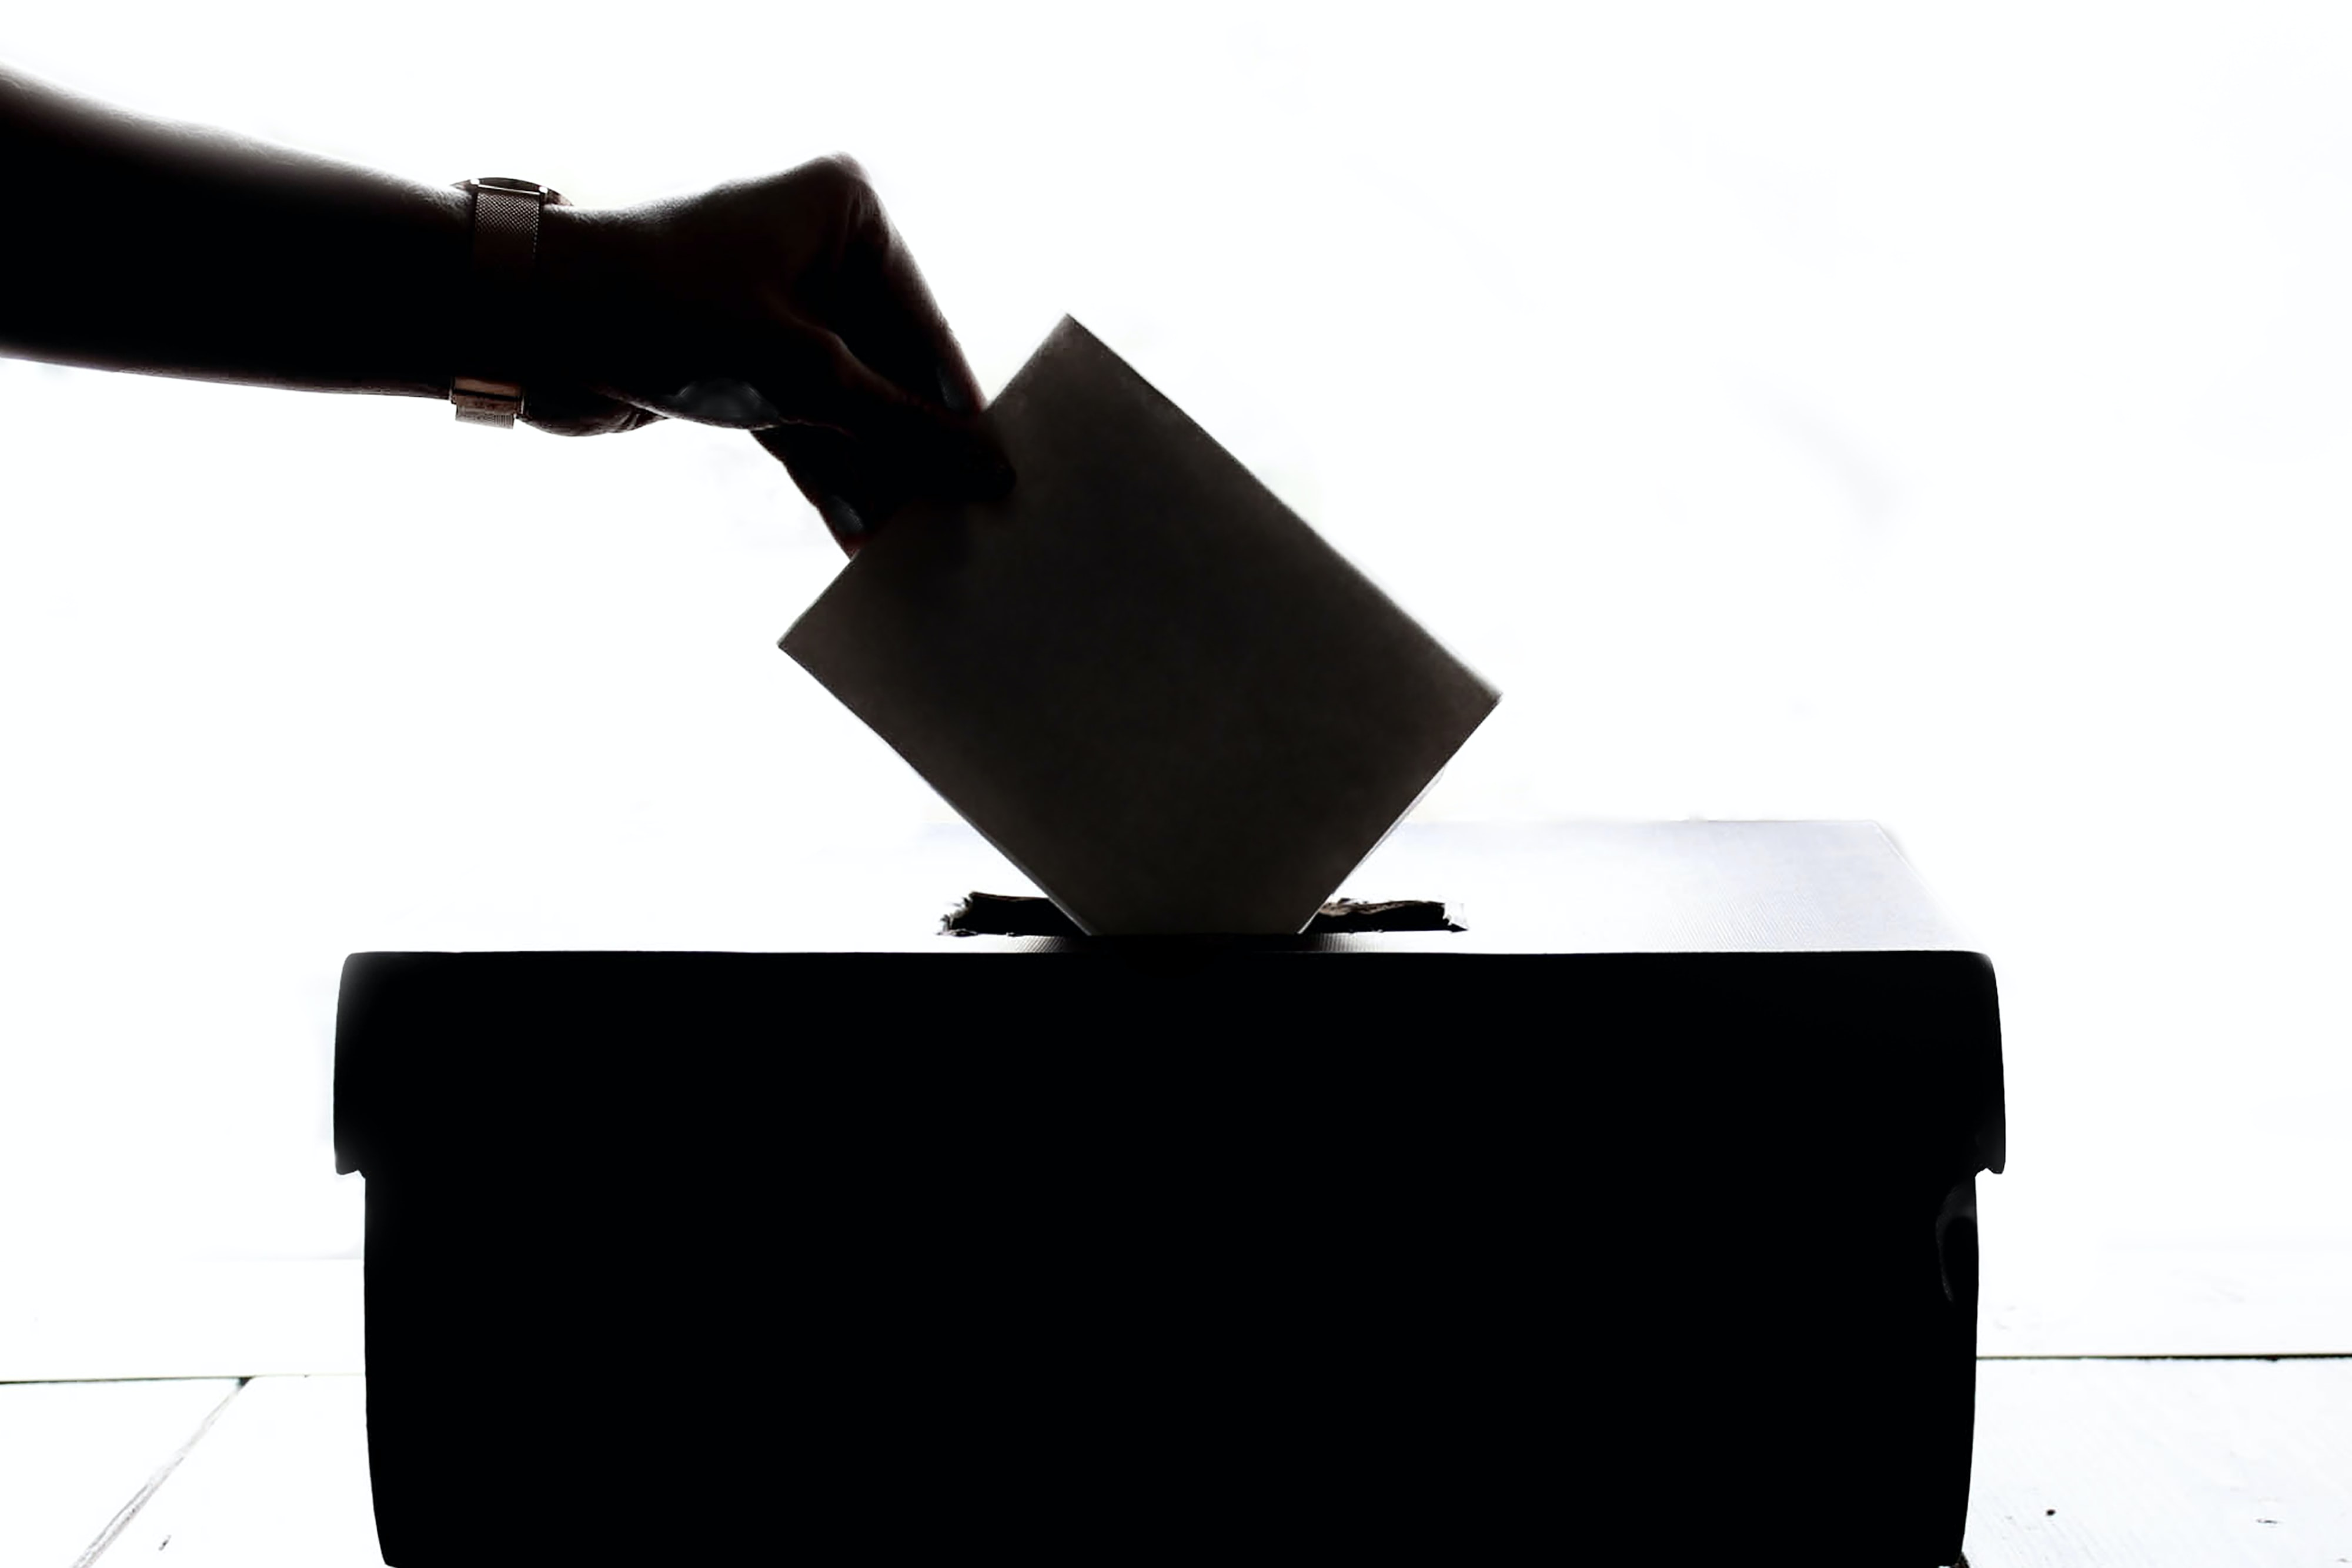 How to Provide Transparency in a World Questioning Election Integrity